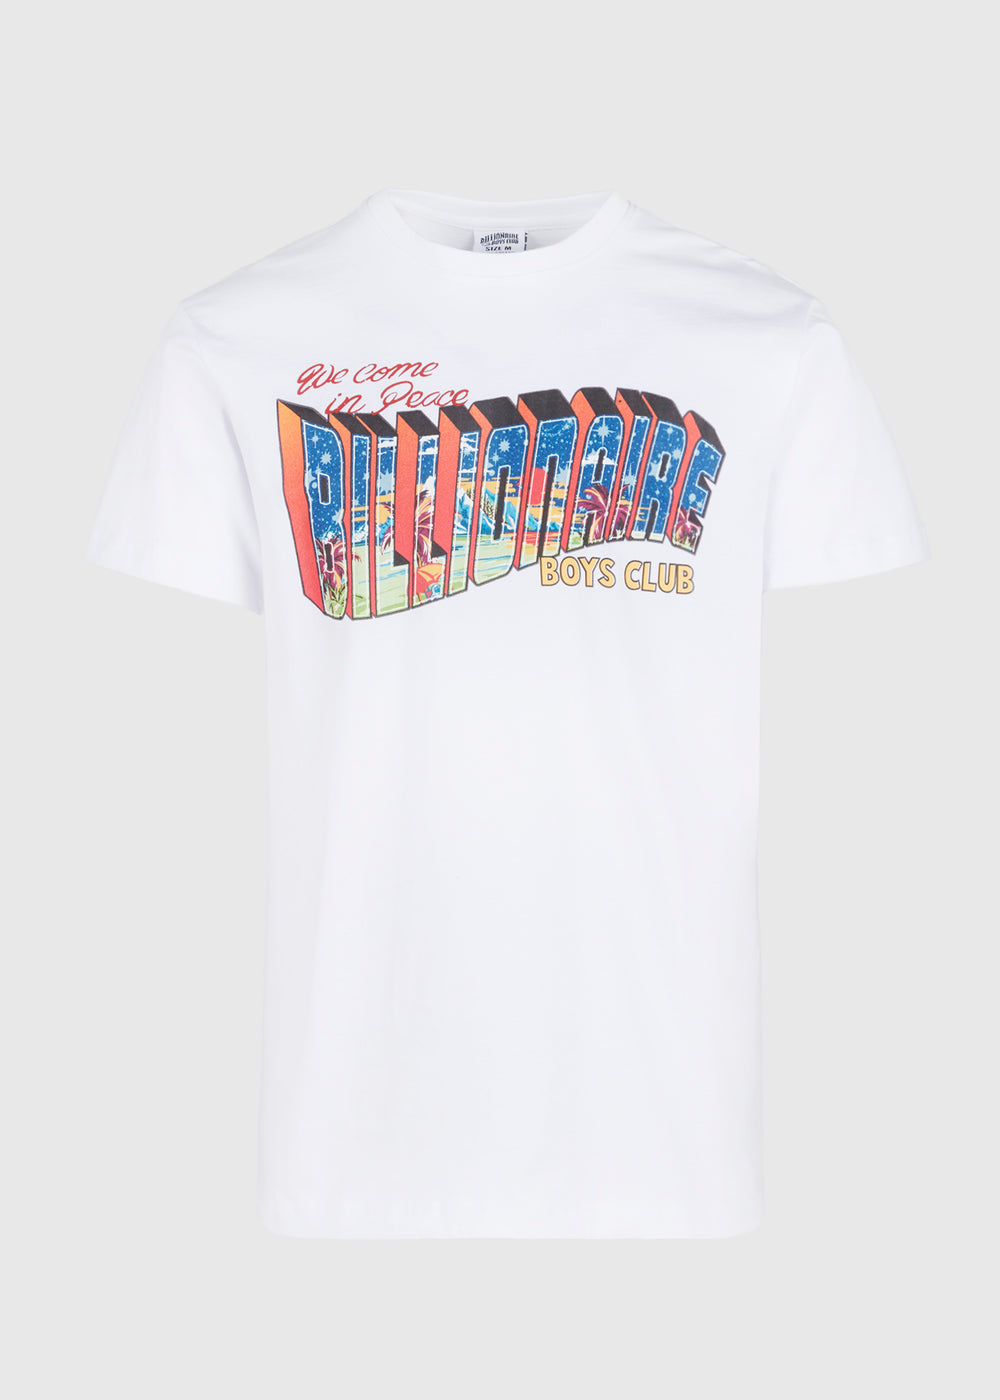 billionaire-boys-club-bbc-greetings-ss-tee-891-8206-wht-wht-1